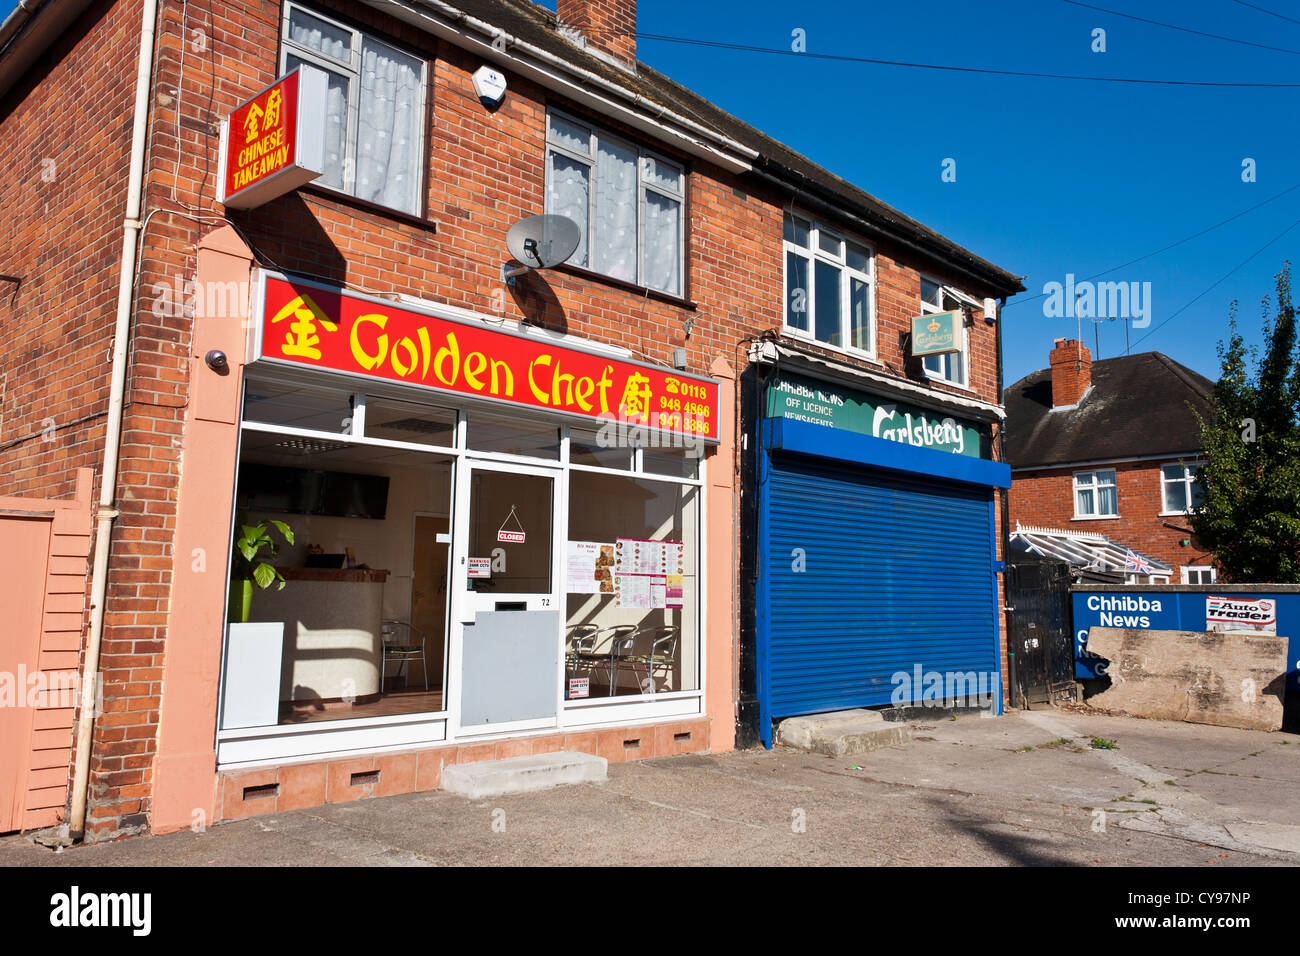 Exterior View Of A Chinese Fast Food Takeaway Restaurant In England Stock Photo Alamy